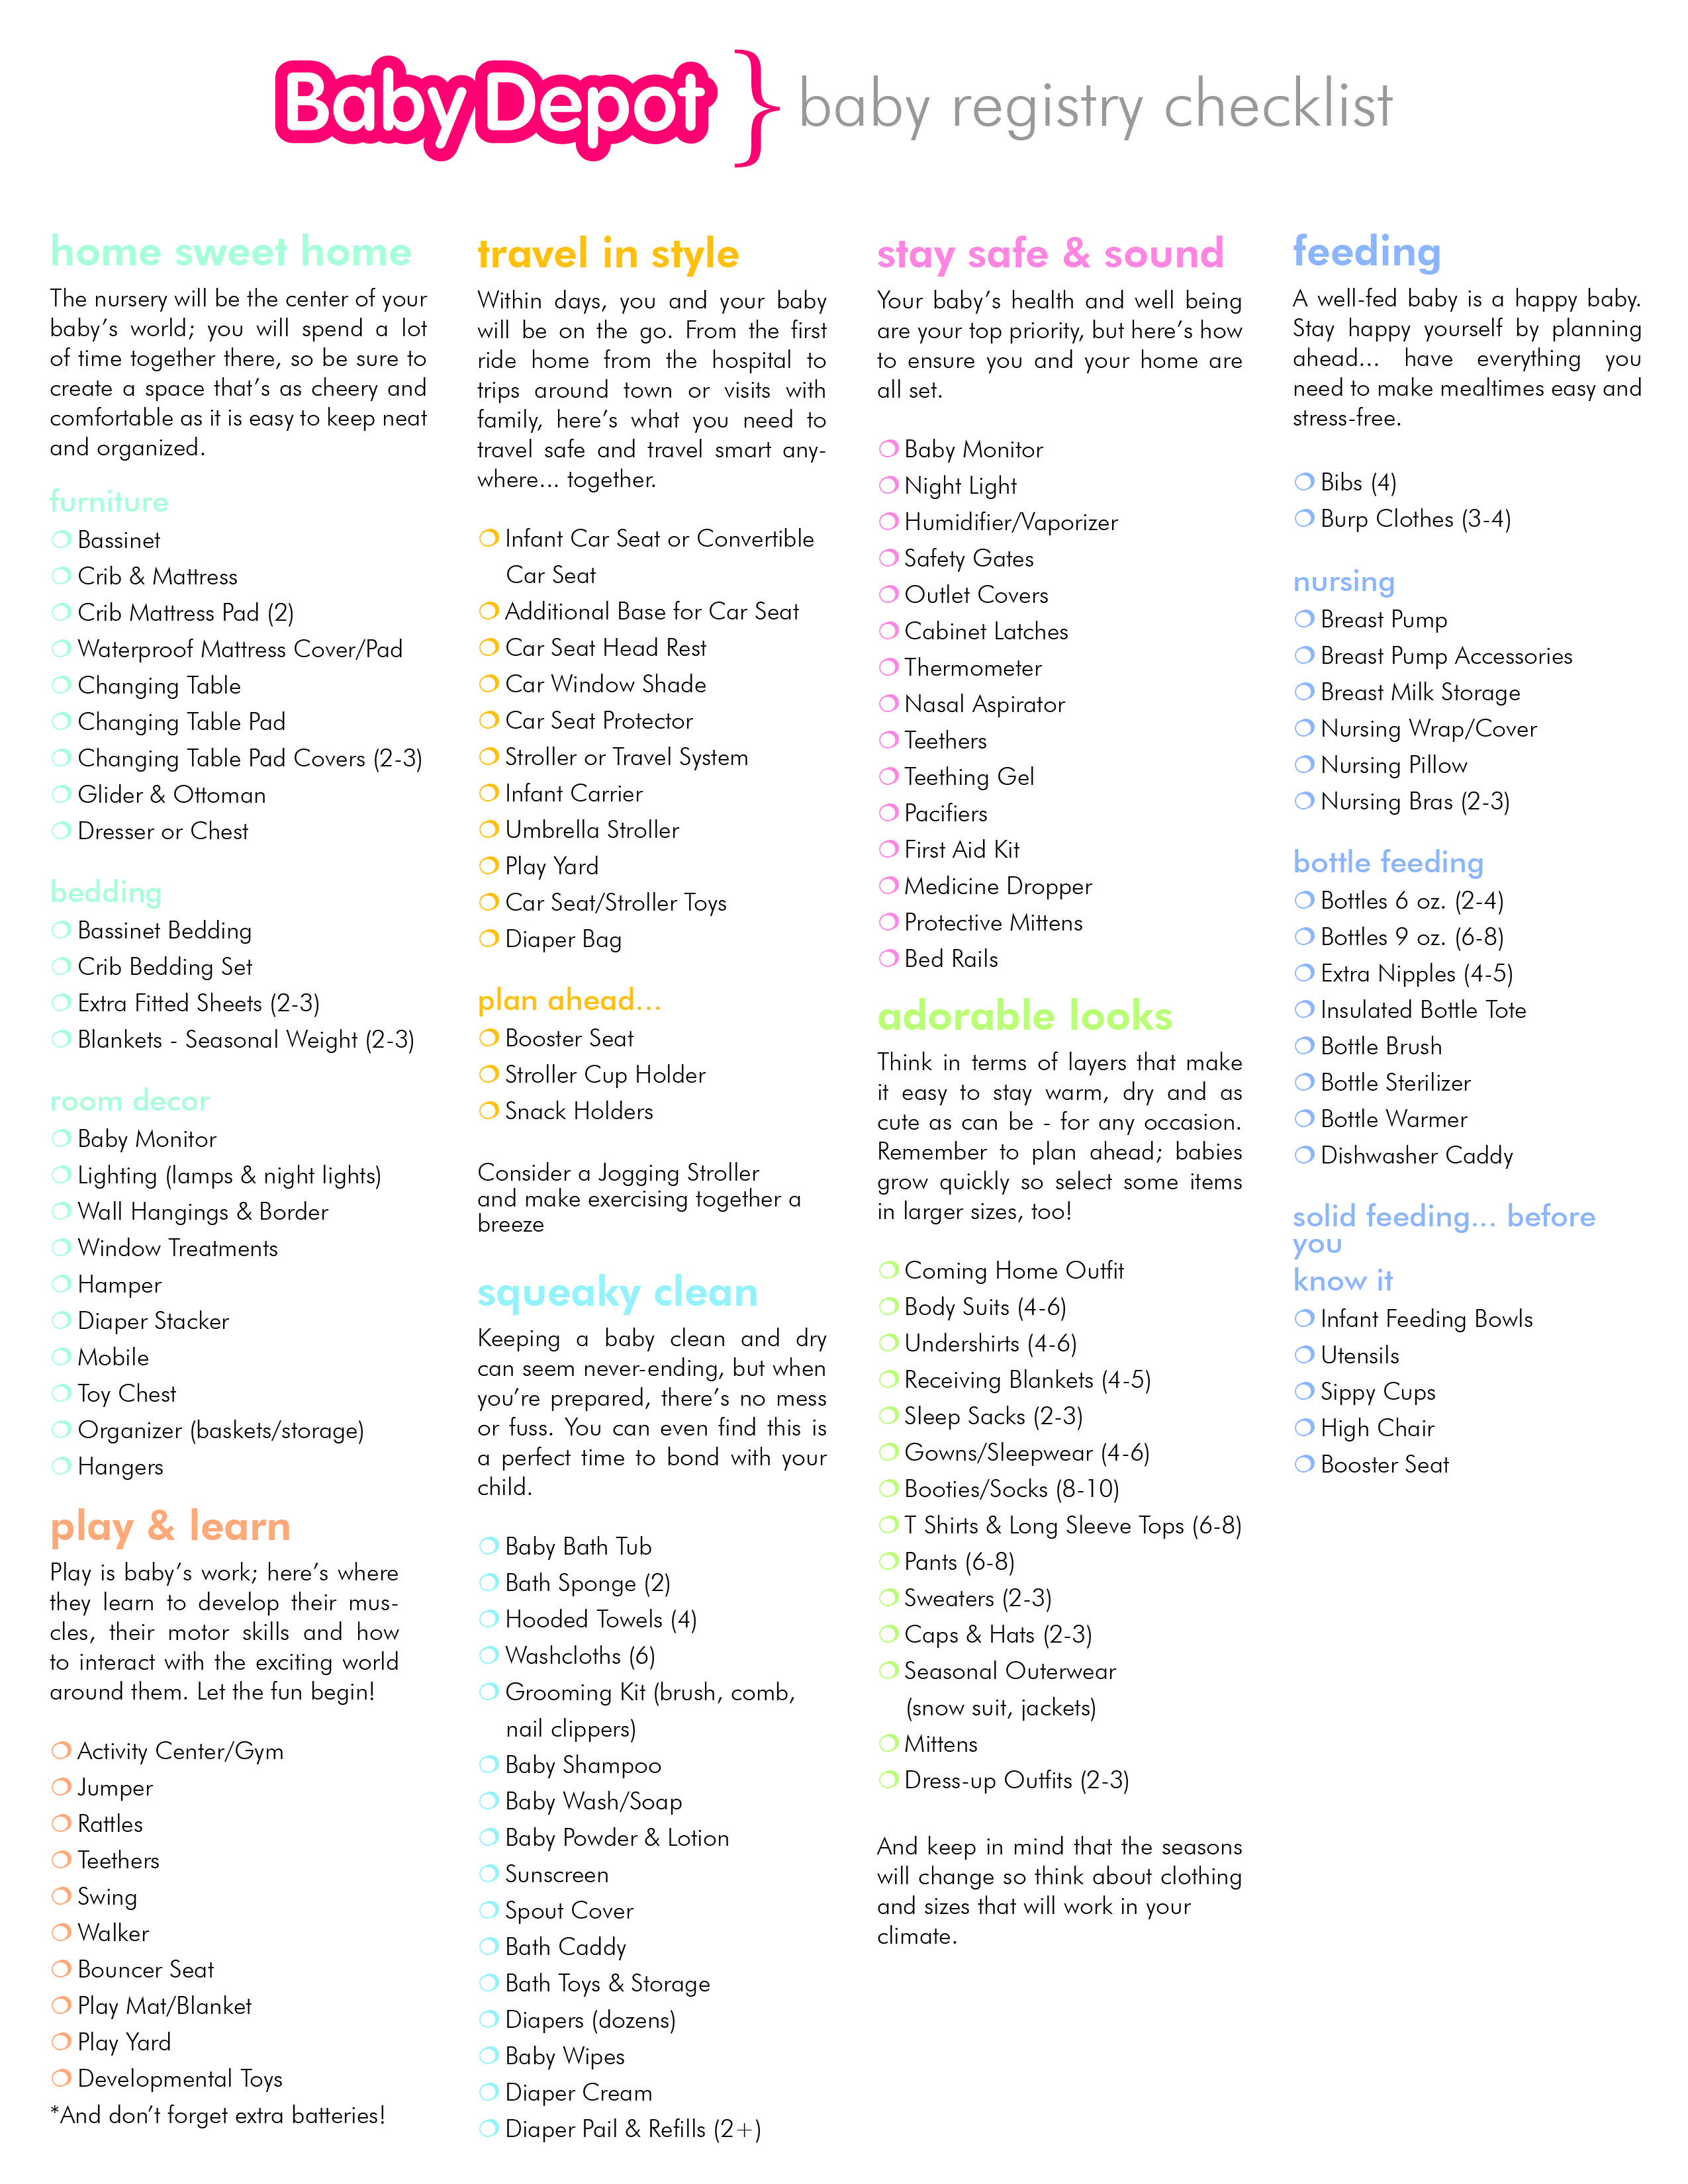 Baby Depot has created a suggested baby registry checklist. Great resource  for new parents!